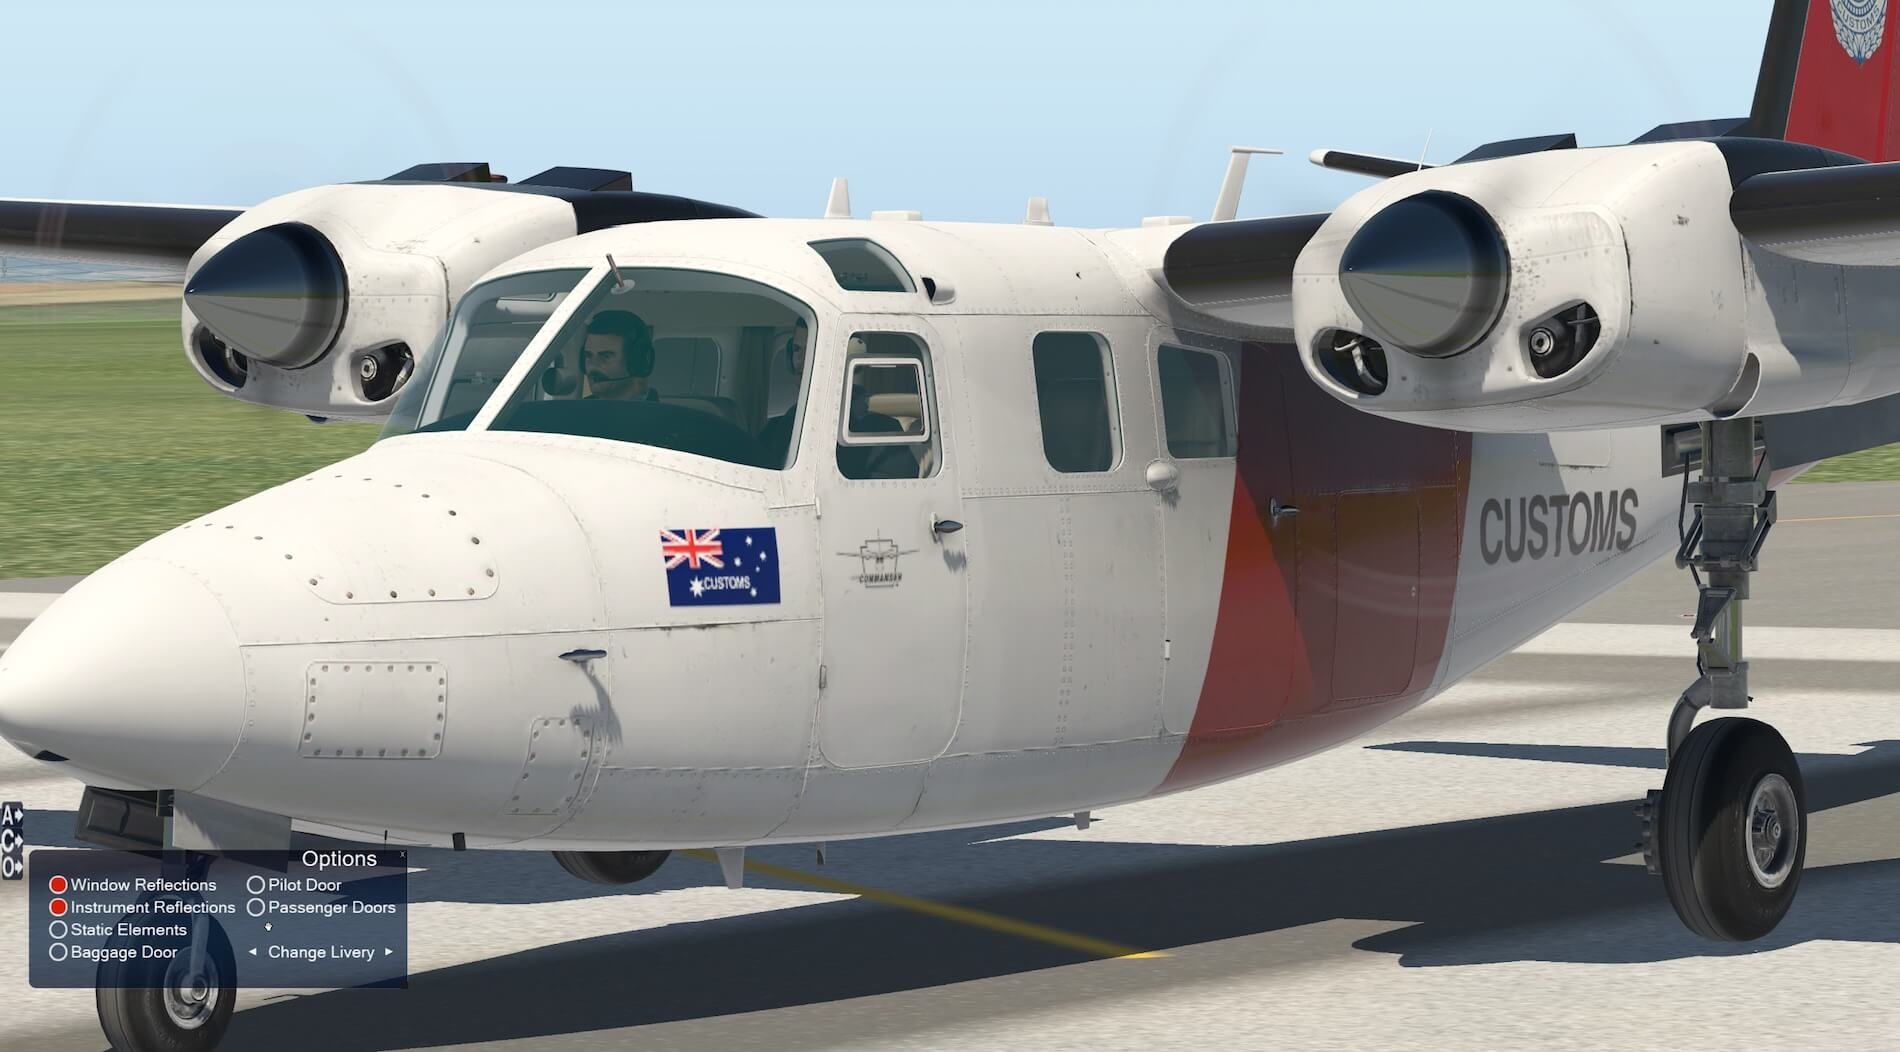 Seven liveries are available with tail codes for aircraft in Canada,  Australia and USA. All are clear and sit correctly on the aircraft.